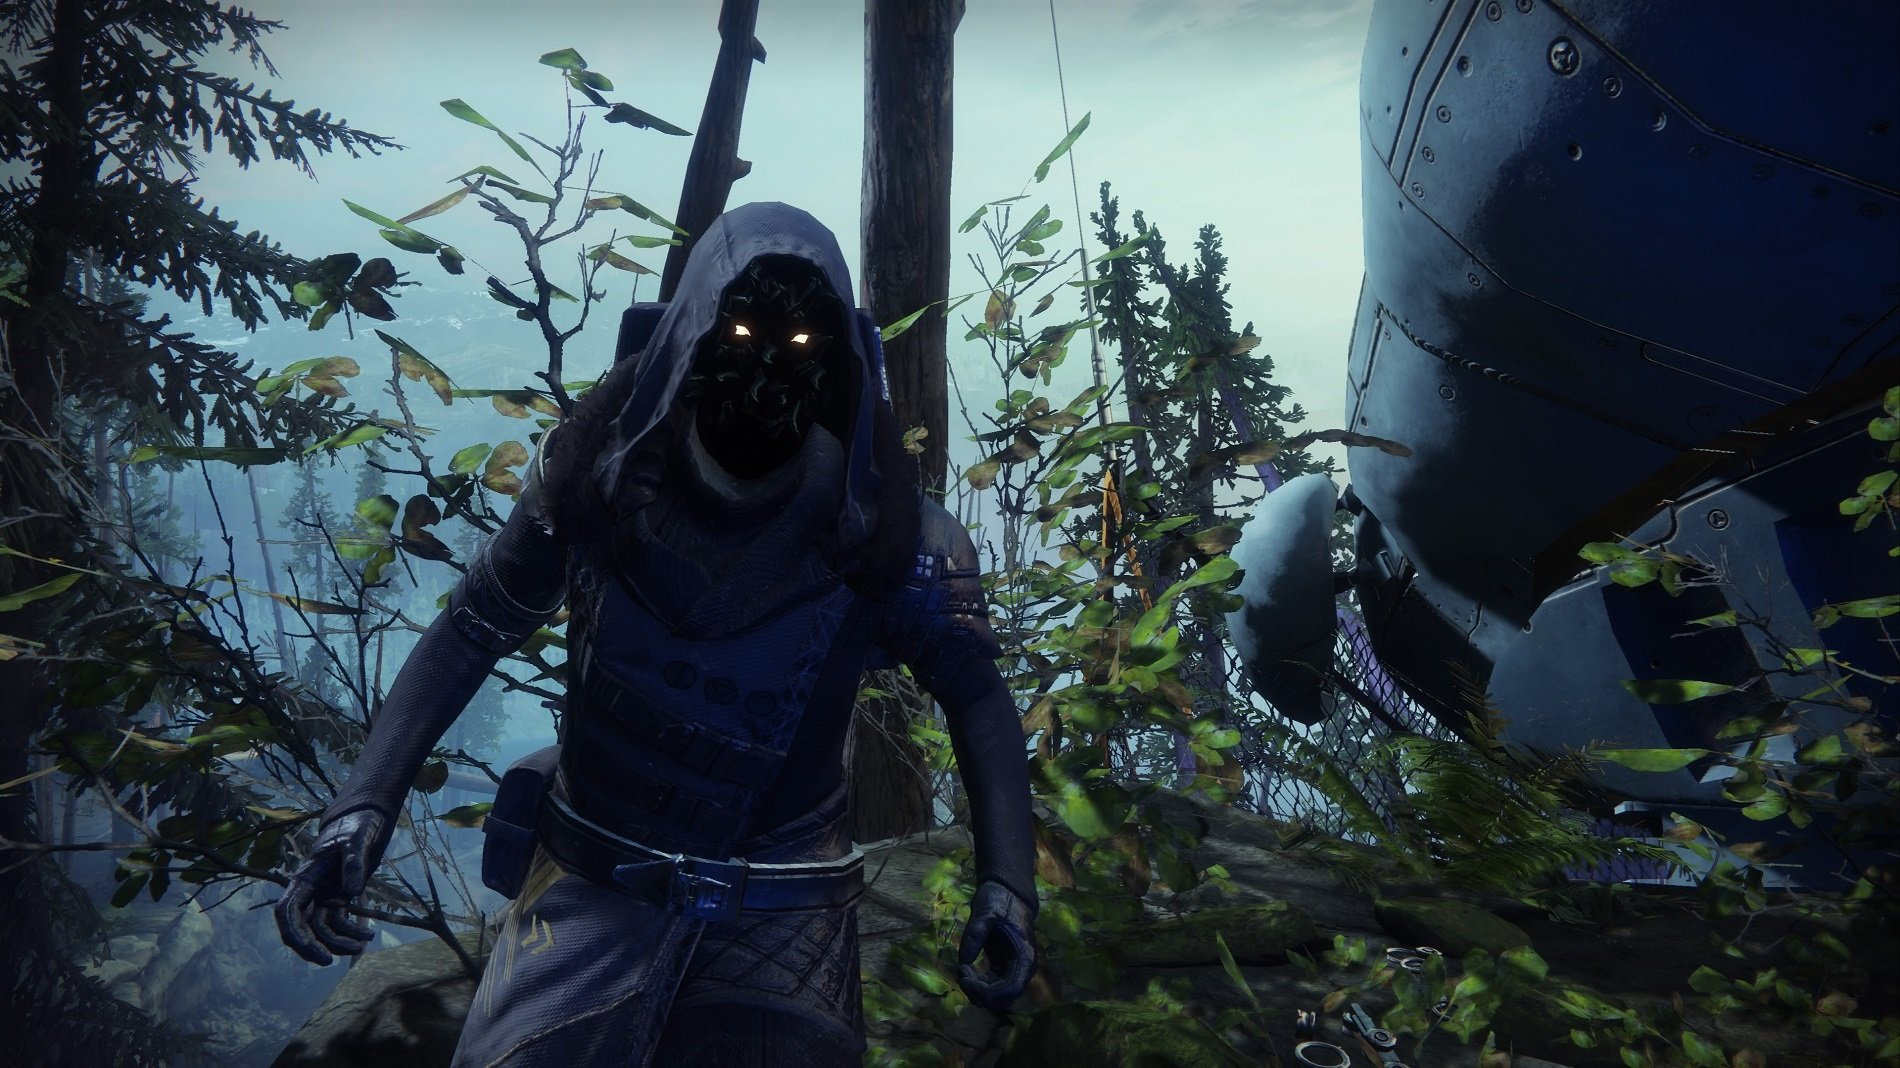 Where to find Xur in Destiny 2 January 31, 2020